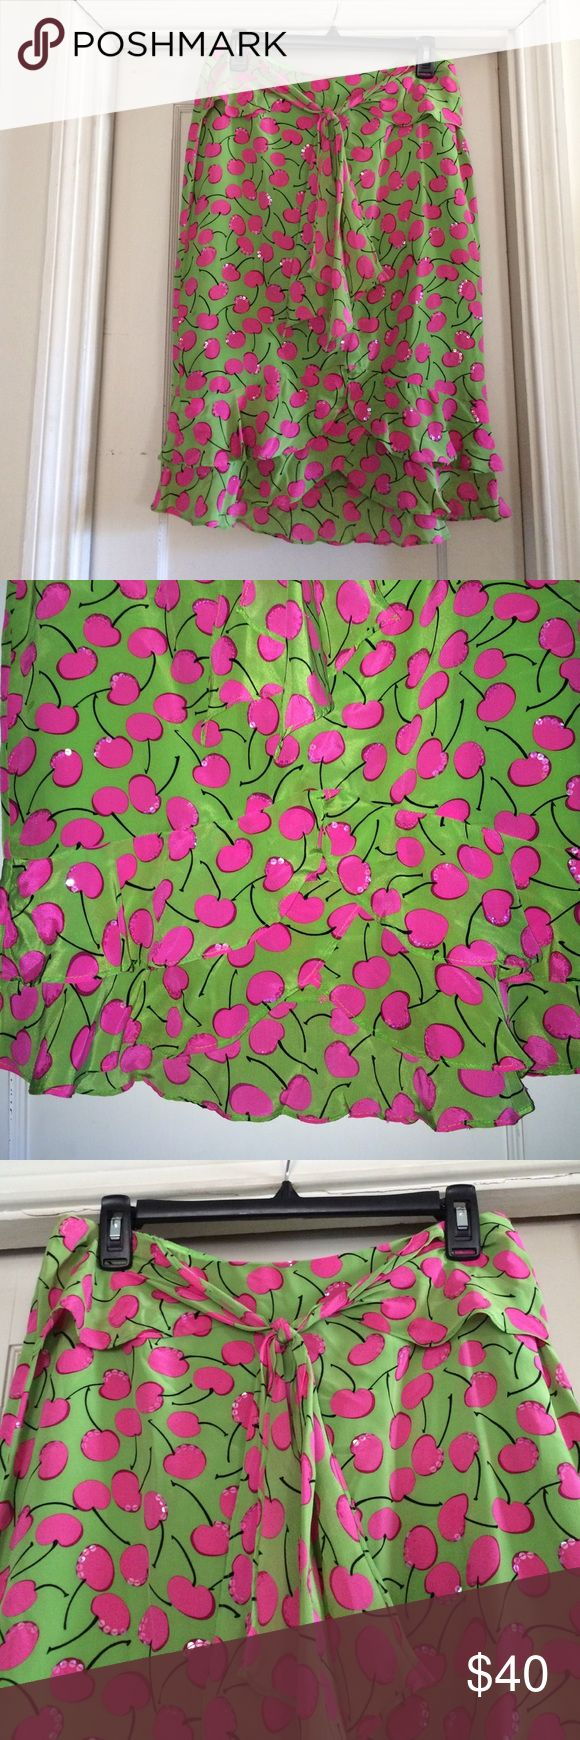 Nanette Lepore cherry design skirt.  Size 4. Nanette Lepore skirt.  Sz 4.  Florescent green with hot pink cherries.  Accented with clear sequins to give it a beautiful shimmer.  Zip back, straight style with ruffle him and tulip effect in front.  Faux sarong tie at front waist. Nanette Lepore Skirts